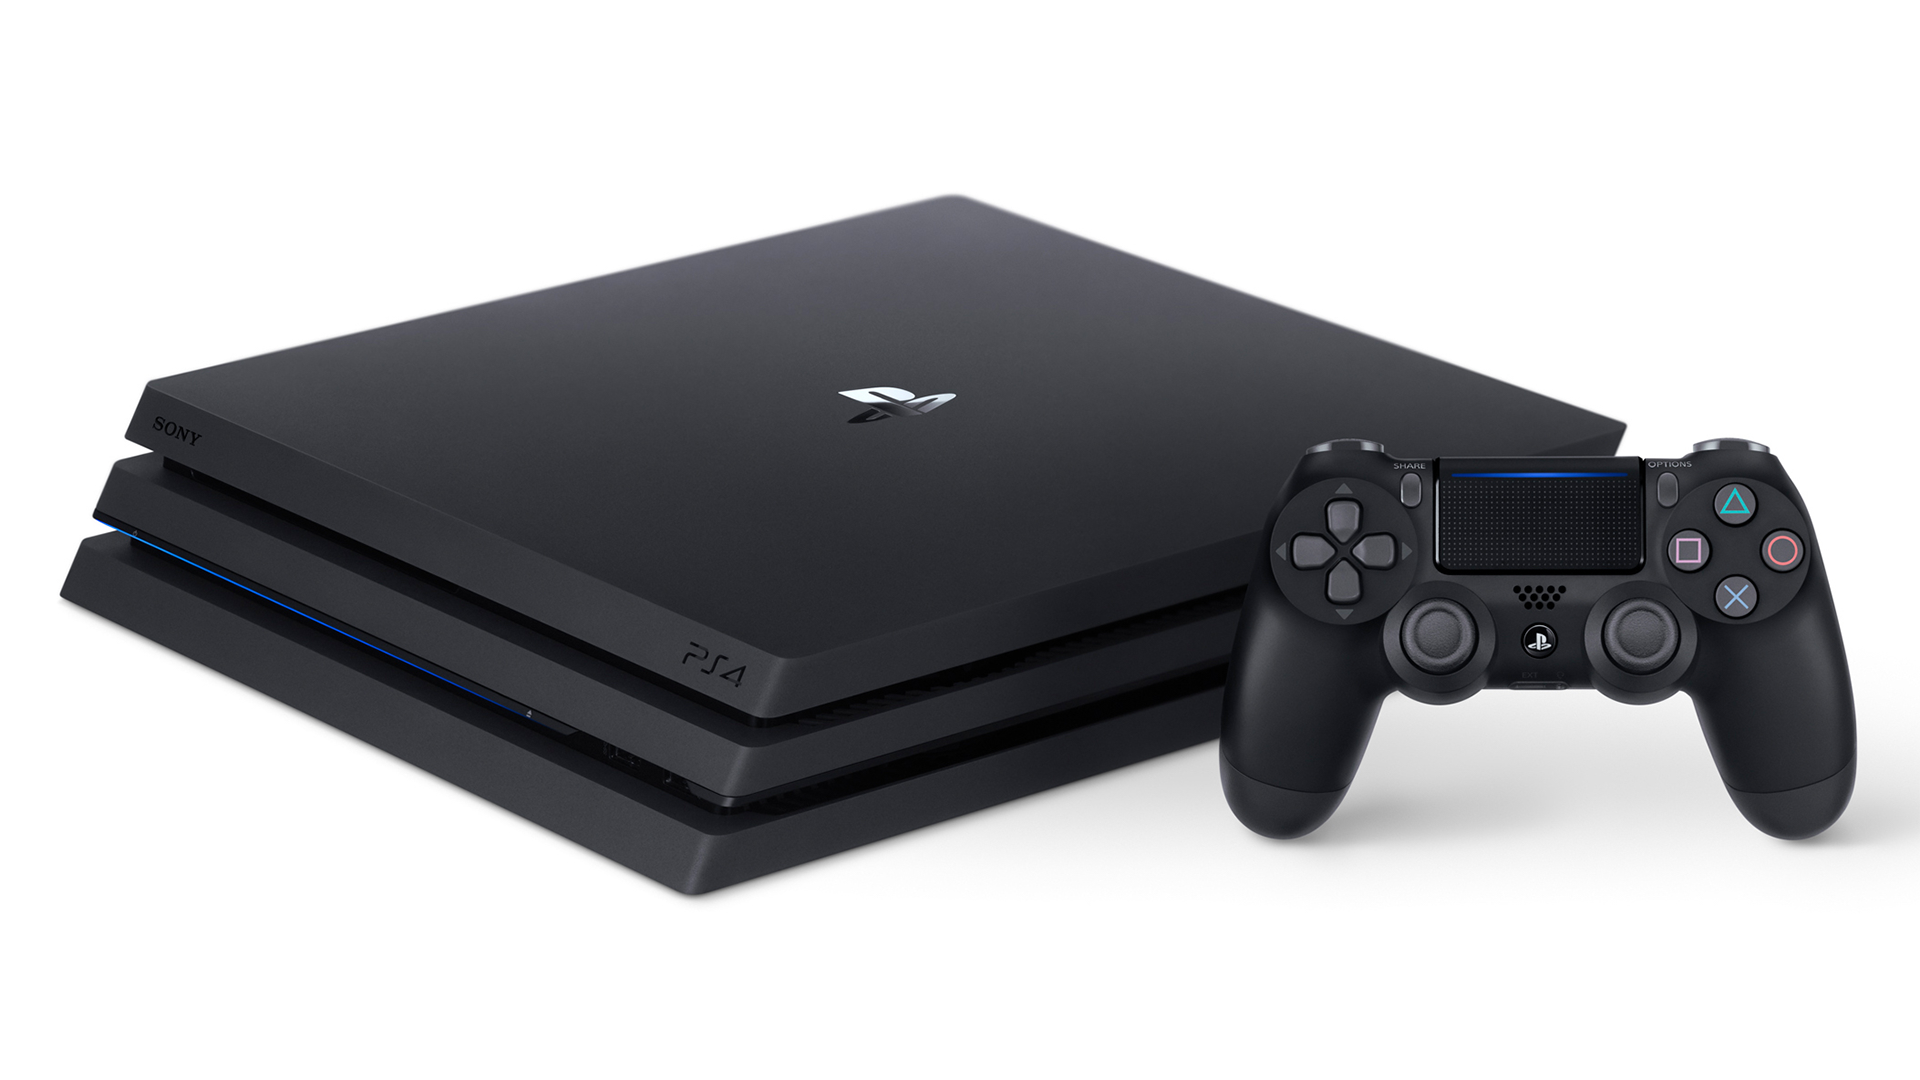 ps4 pro.png - Ps4 PNG